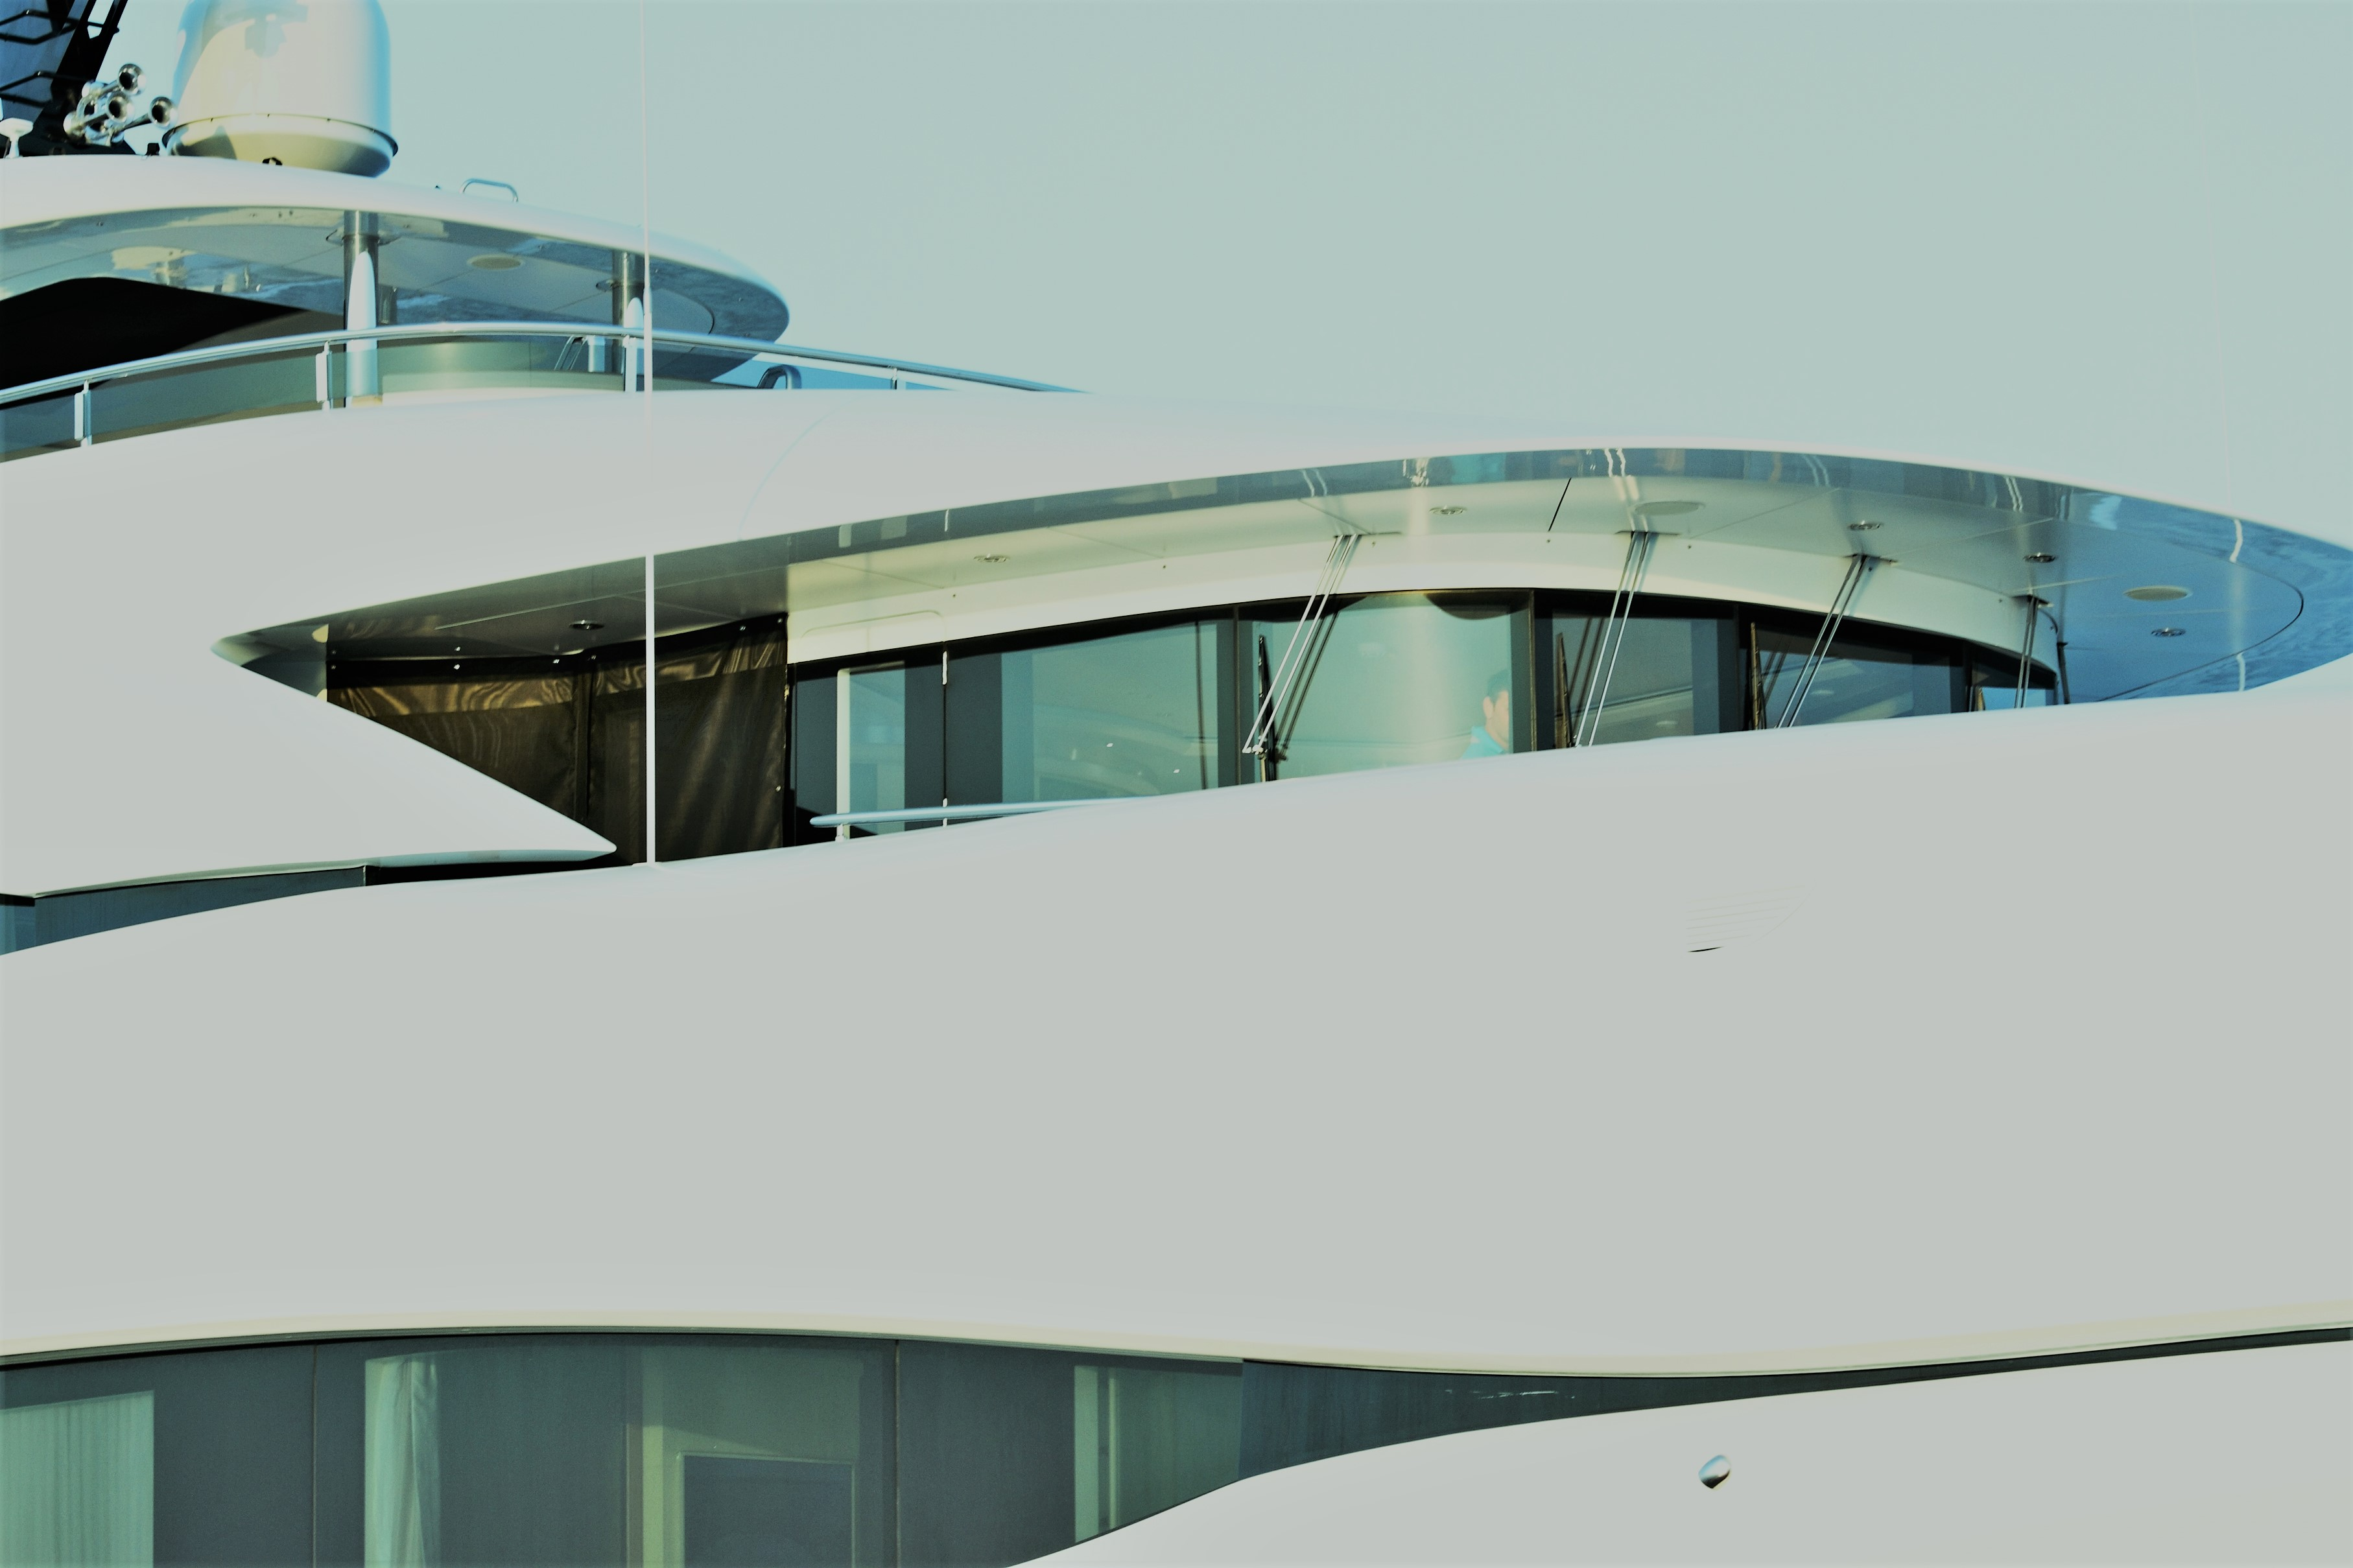 Yacht QUARANTA By Curvelle - Profile Detail